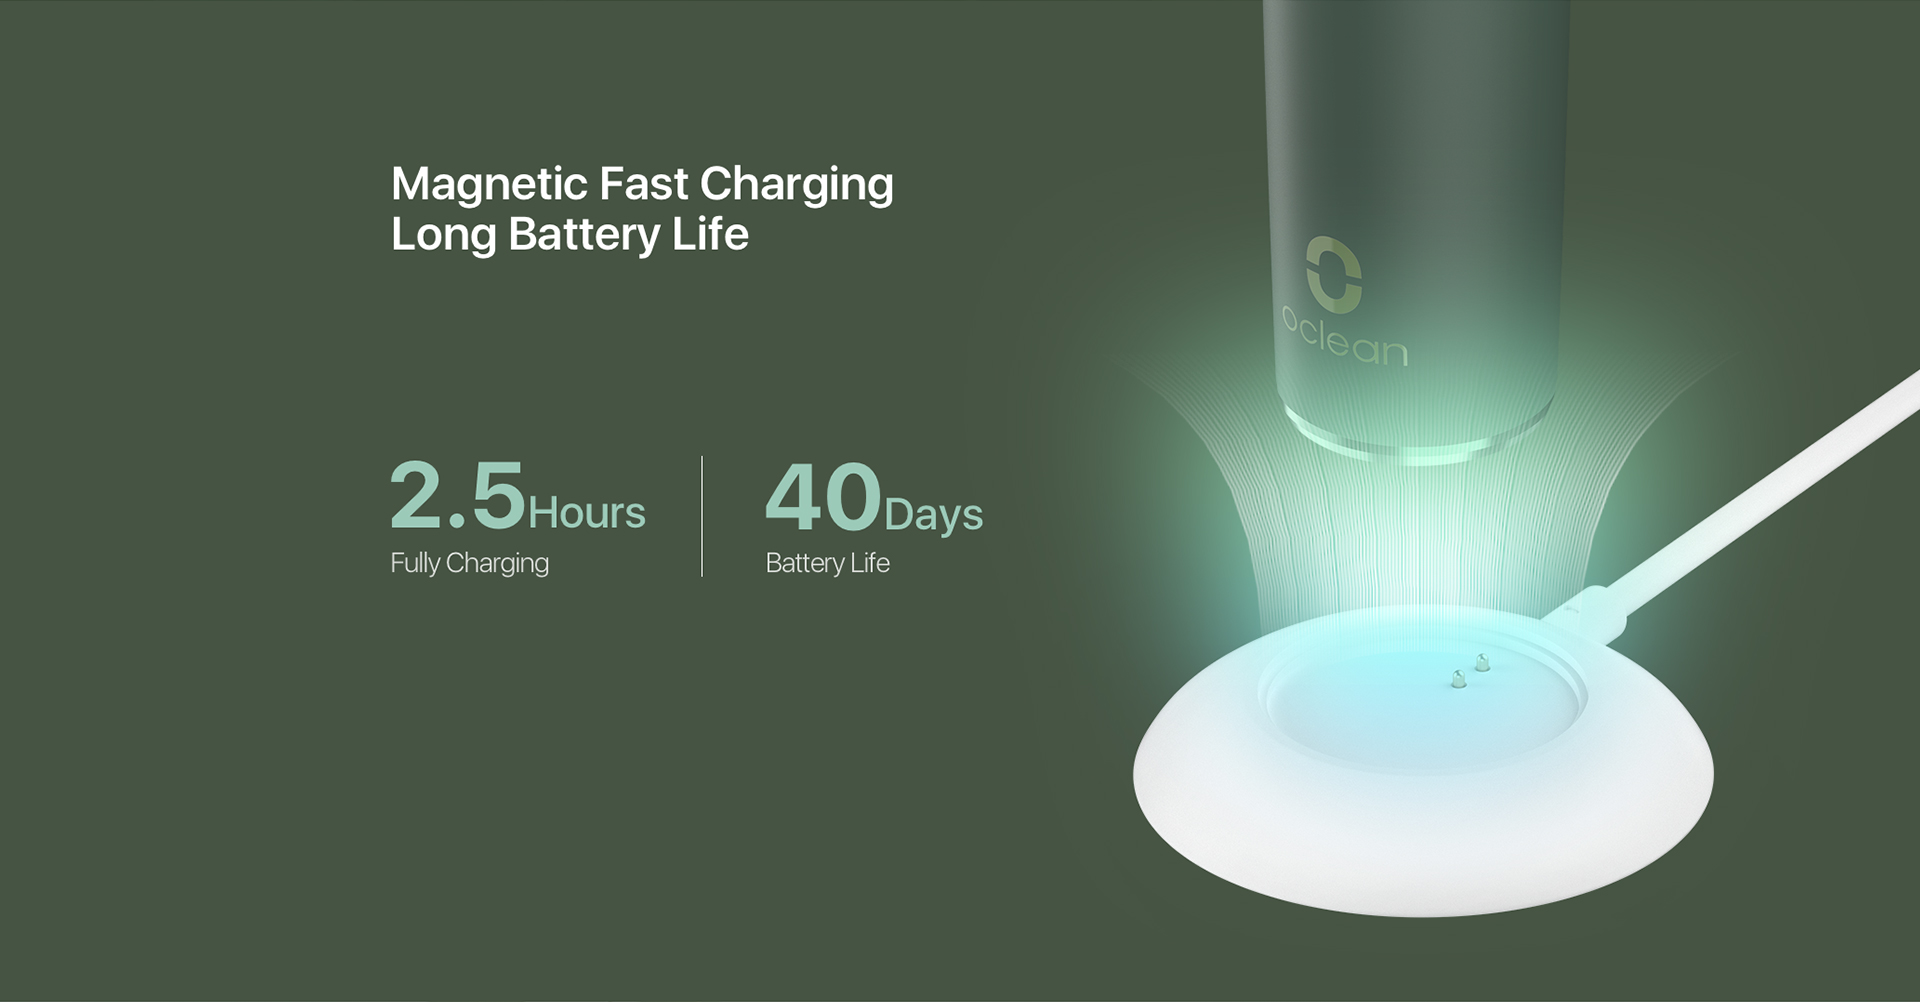 Magnetic Fast Charging Long Battery Life